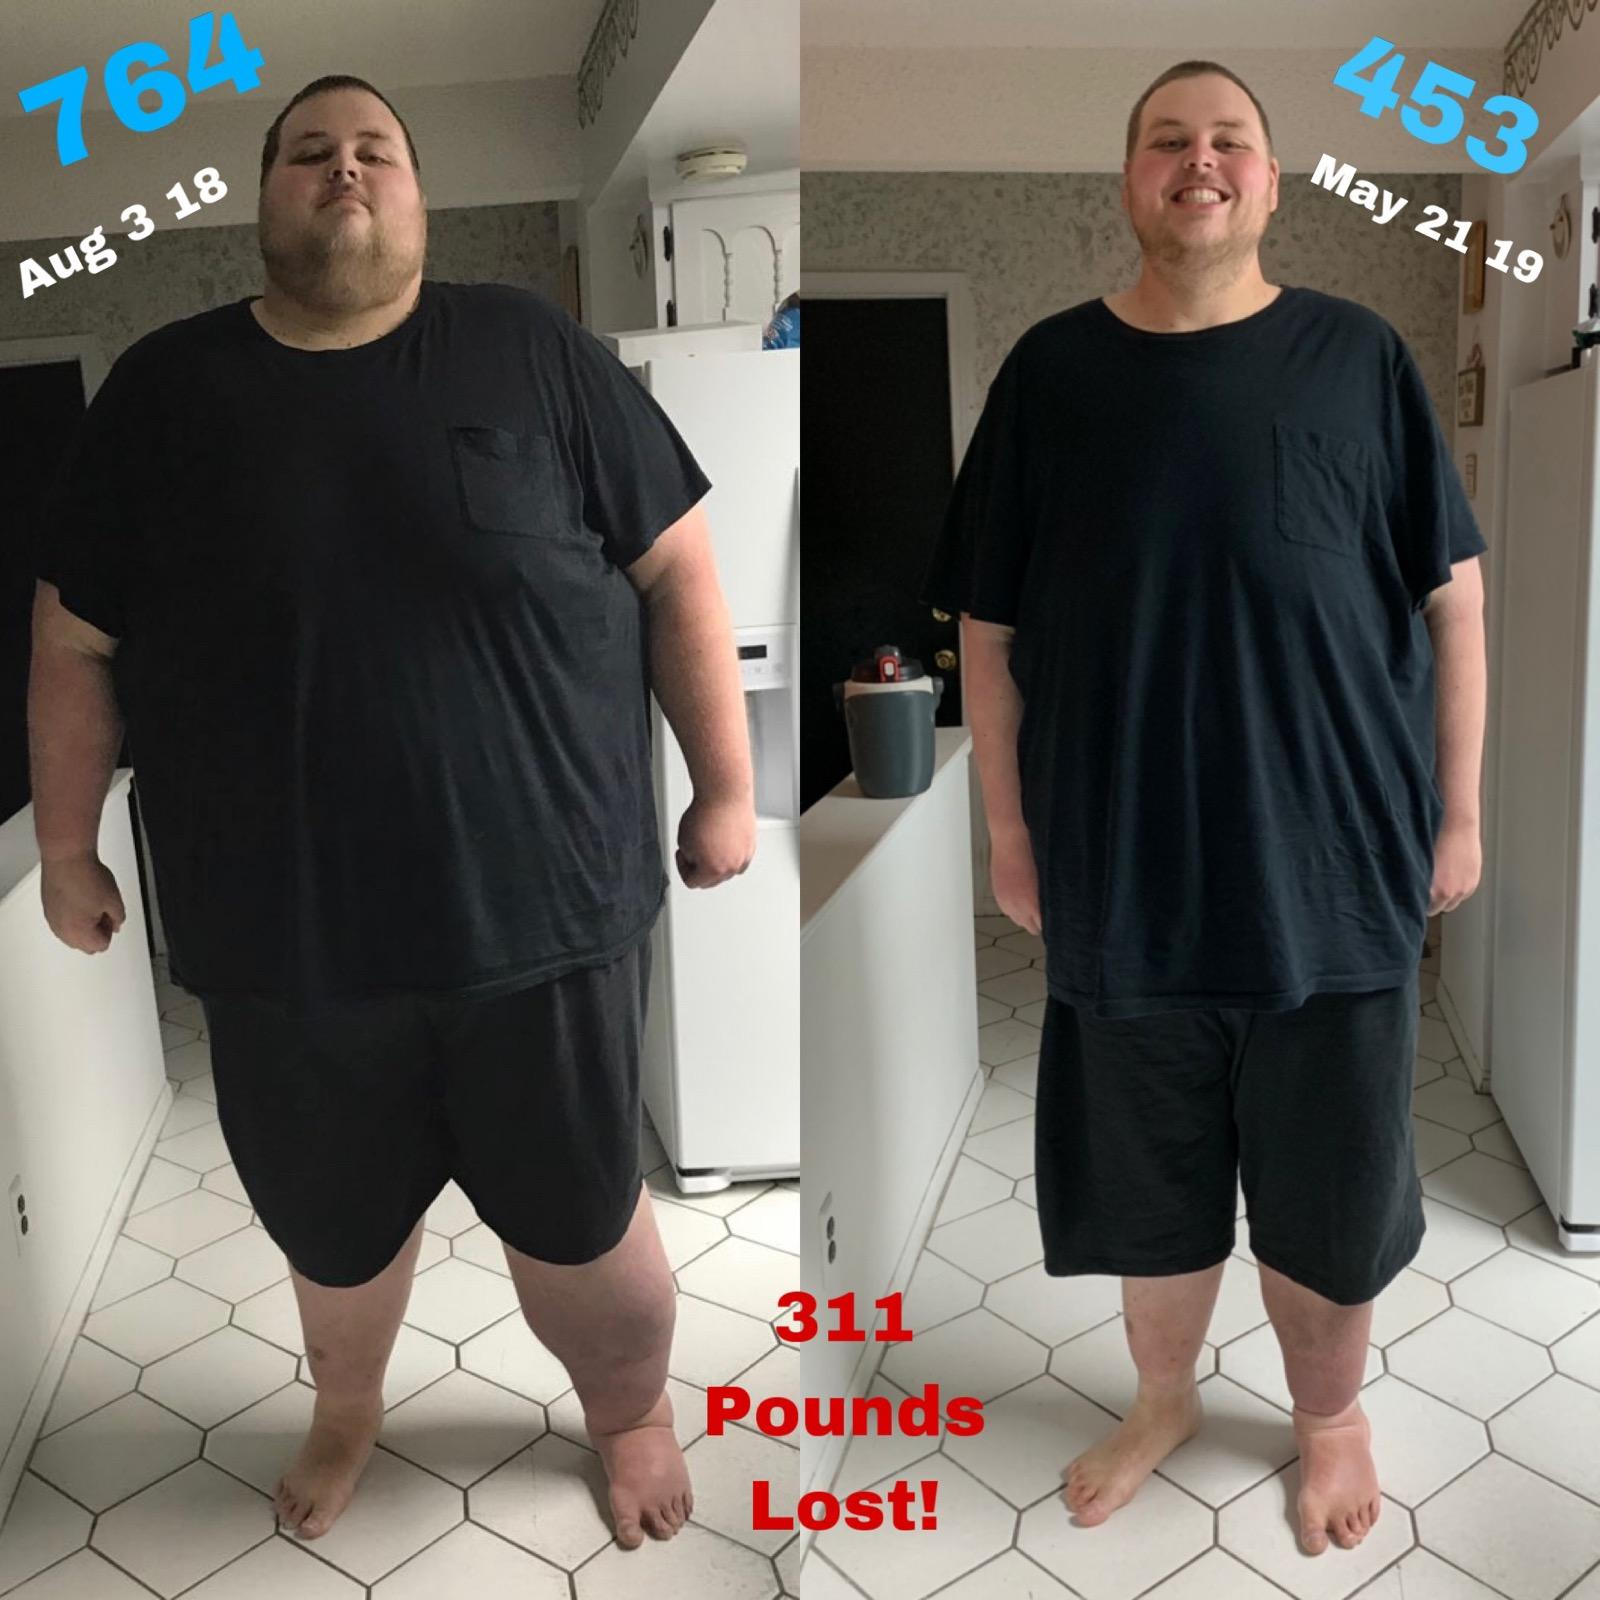 6 feet 8 Male Before and After 311 lbs Fat Loss 764 lbs to 453 lbs